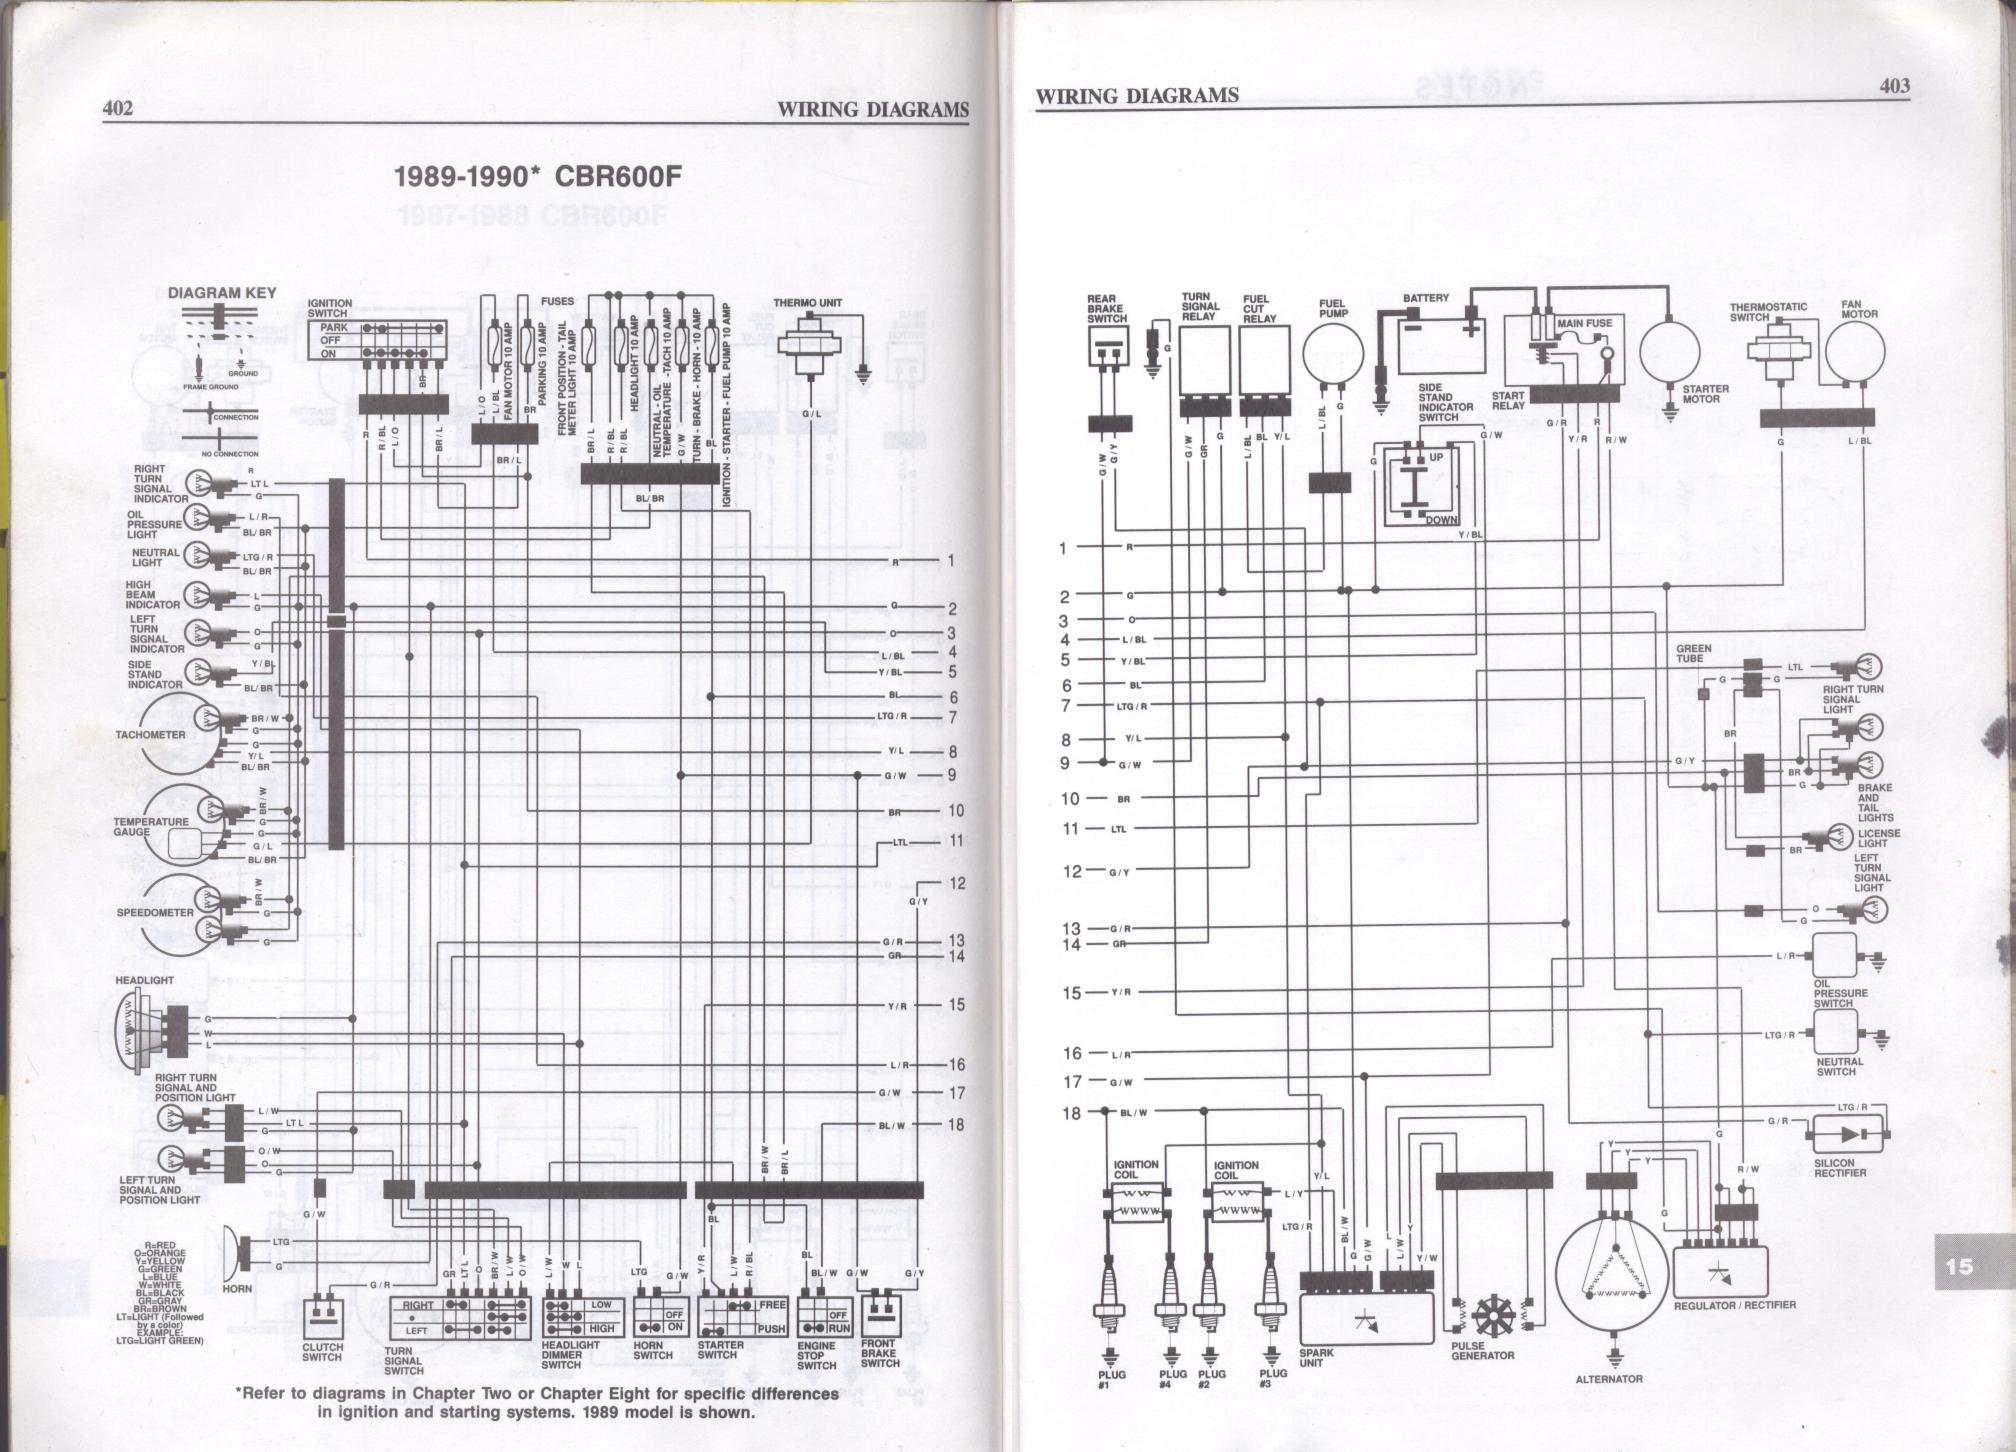 ct110 wiring diagram with 0d on Honda Ct110 Wiring Harness additionally Honda Atc90 Wiring Diagram together with Kfx 400 Engine Diagram as well 0d as well 2003 Honda Accord Electrical Troubleshooting Manual Wiring Diagrams.